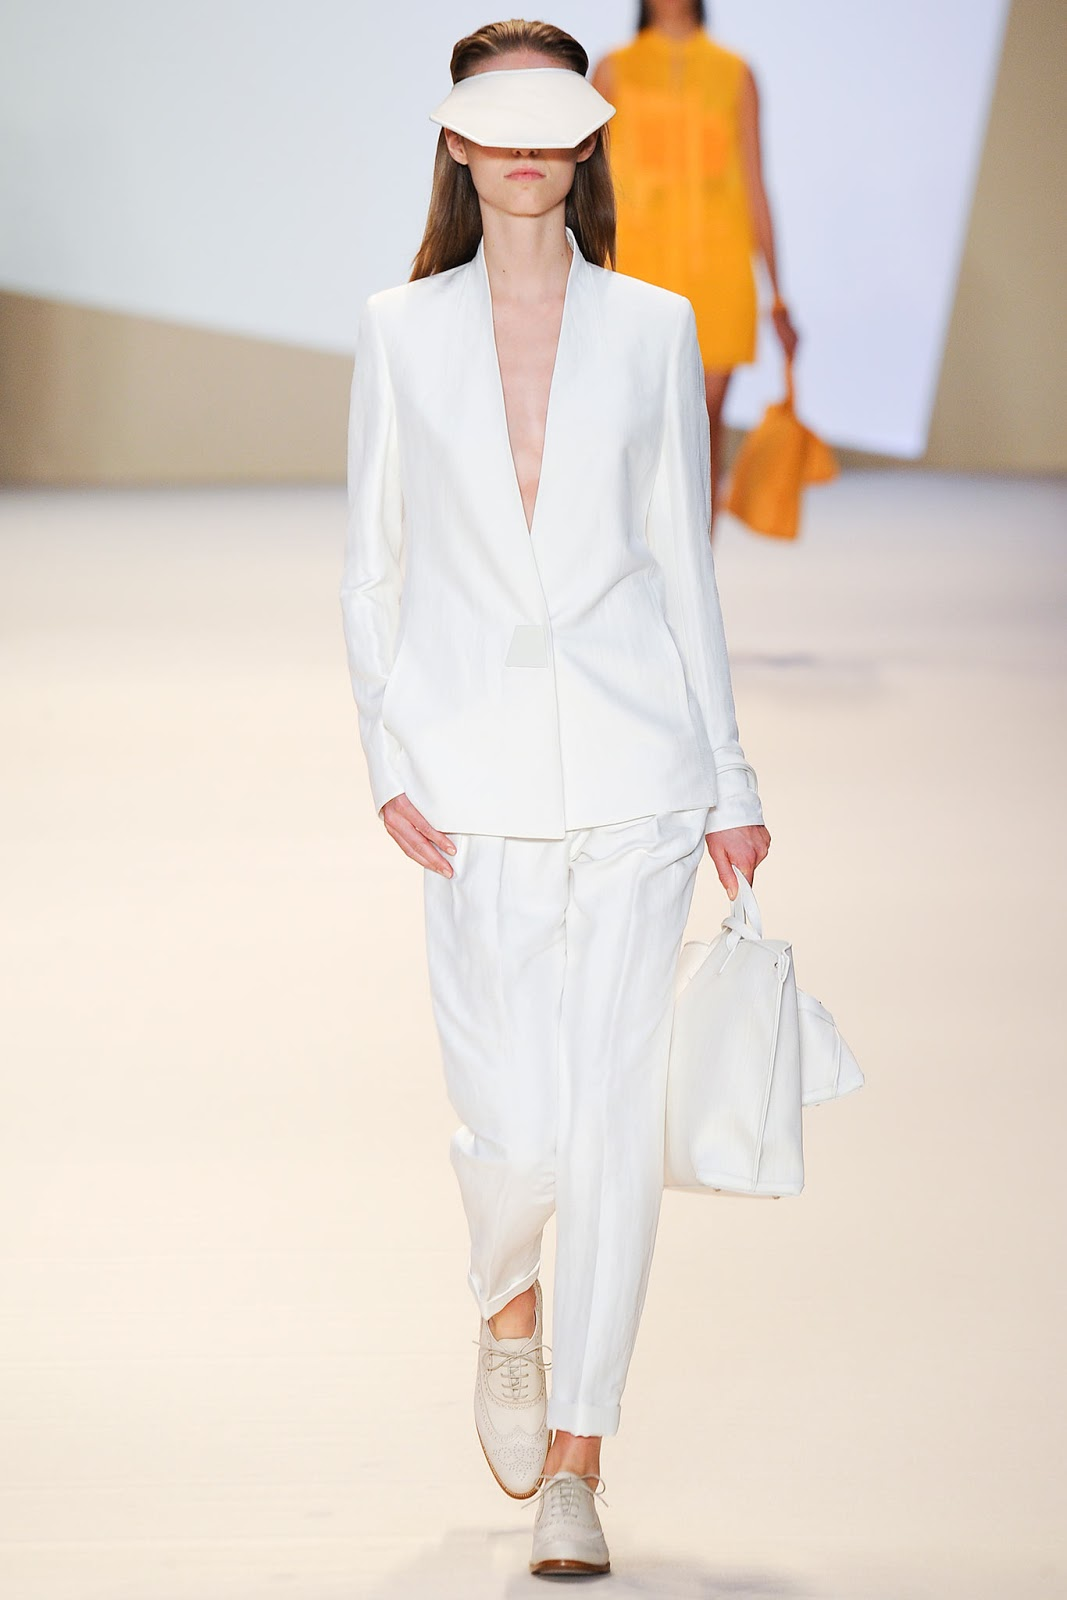 Akris / Spring/Summer 2015 trends / trouser suit / styling tips and outfit inspiration / via fashioned by love british fashion blog